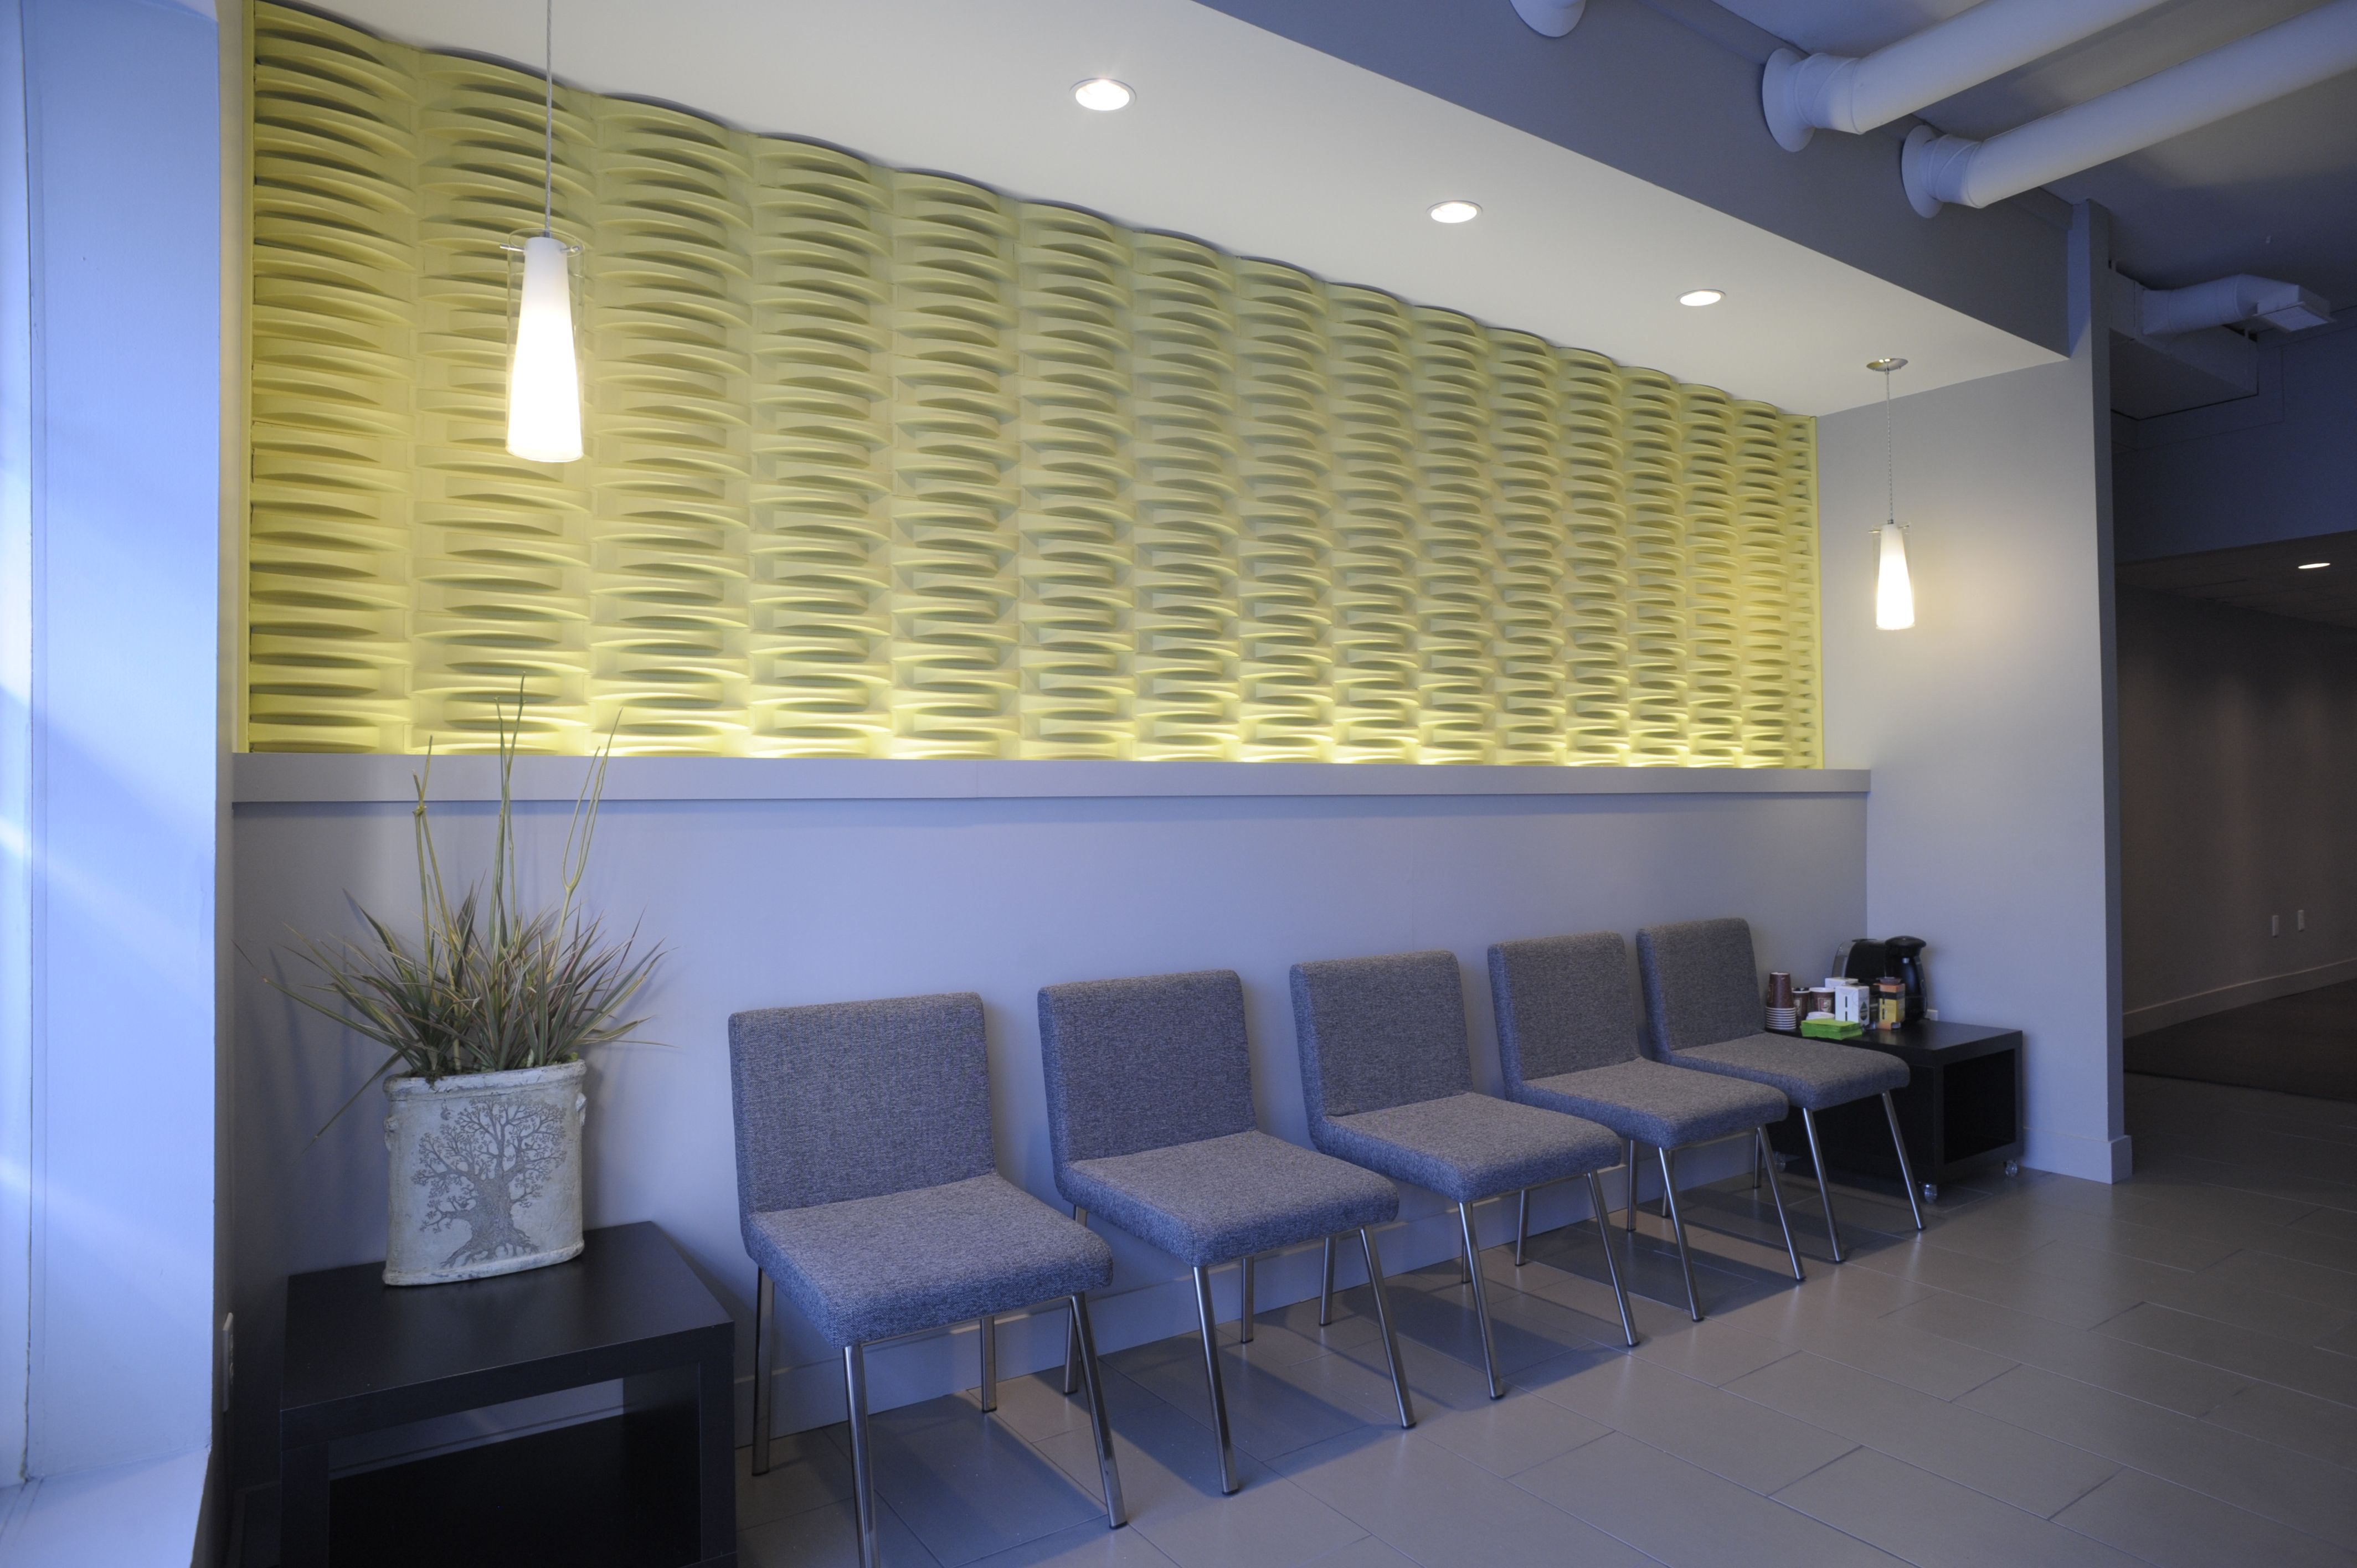 acoustic weave wall tiles  mio in use  pinterest  wall tiles  - room